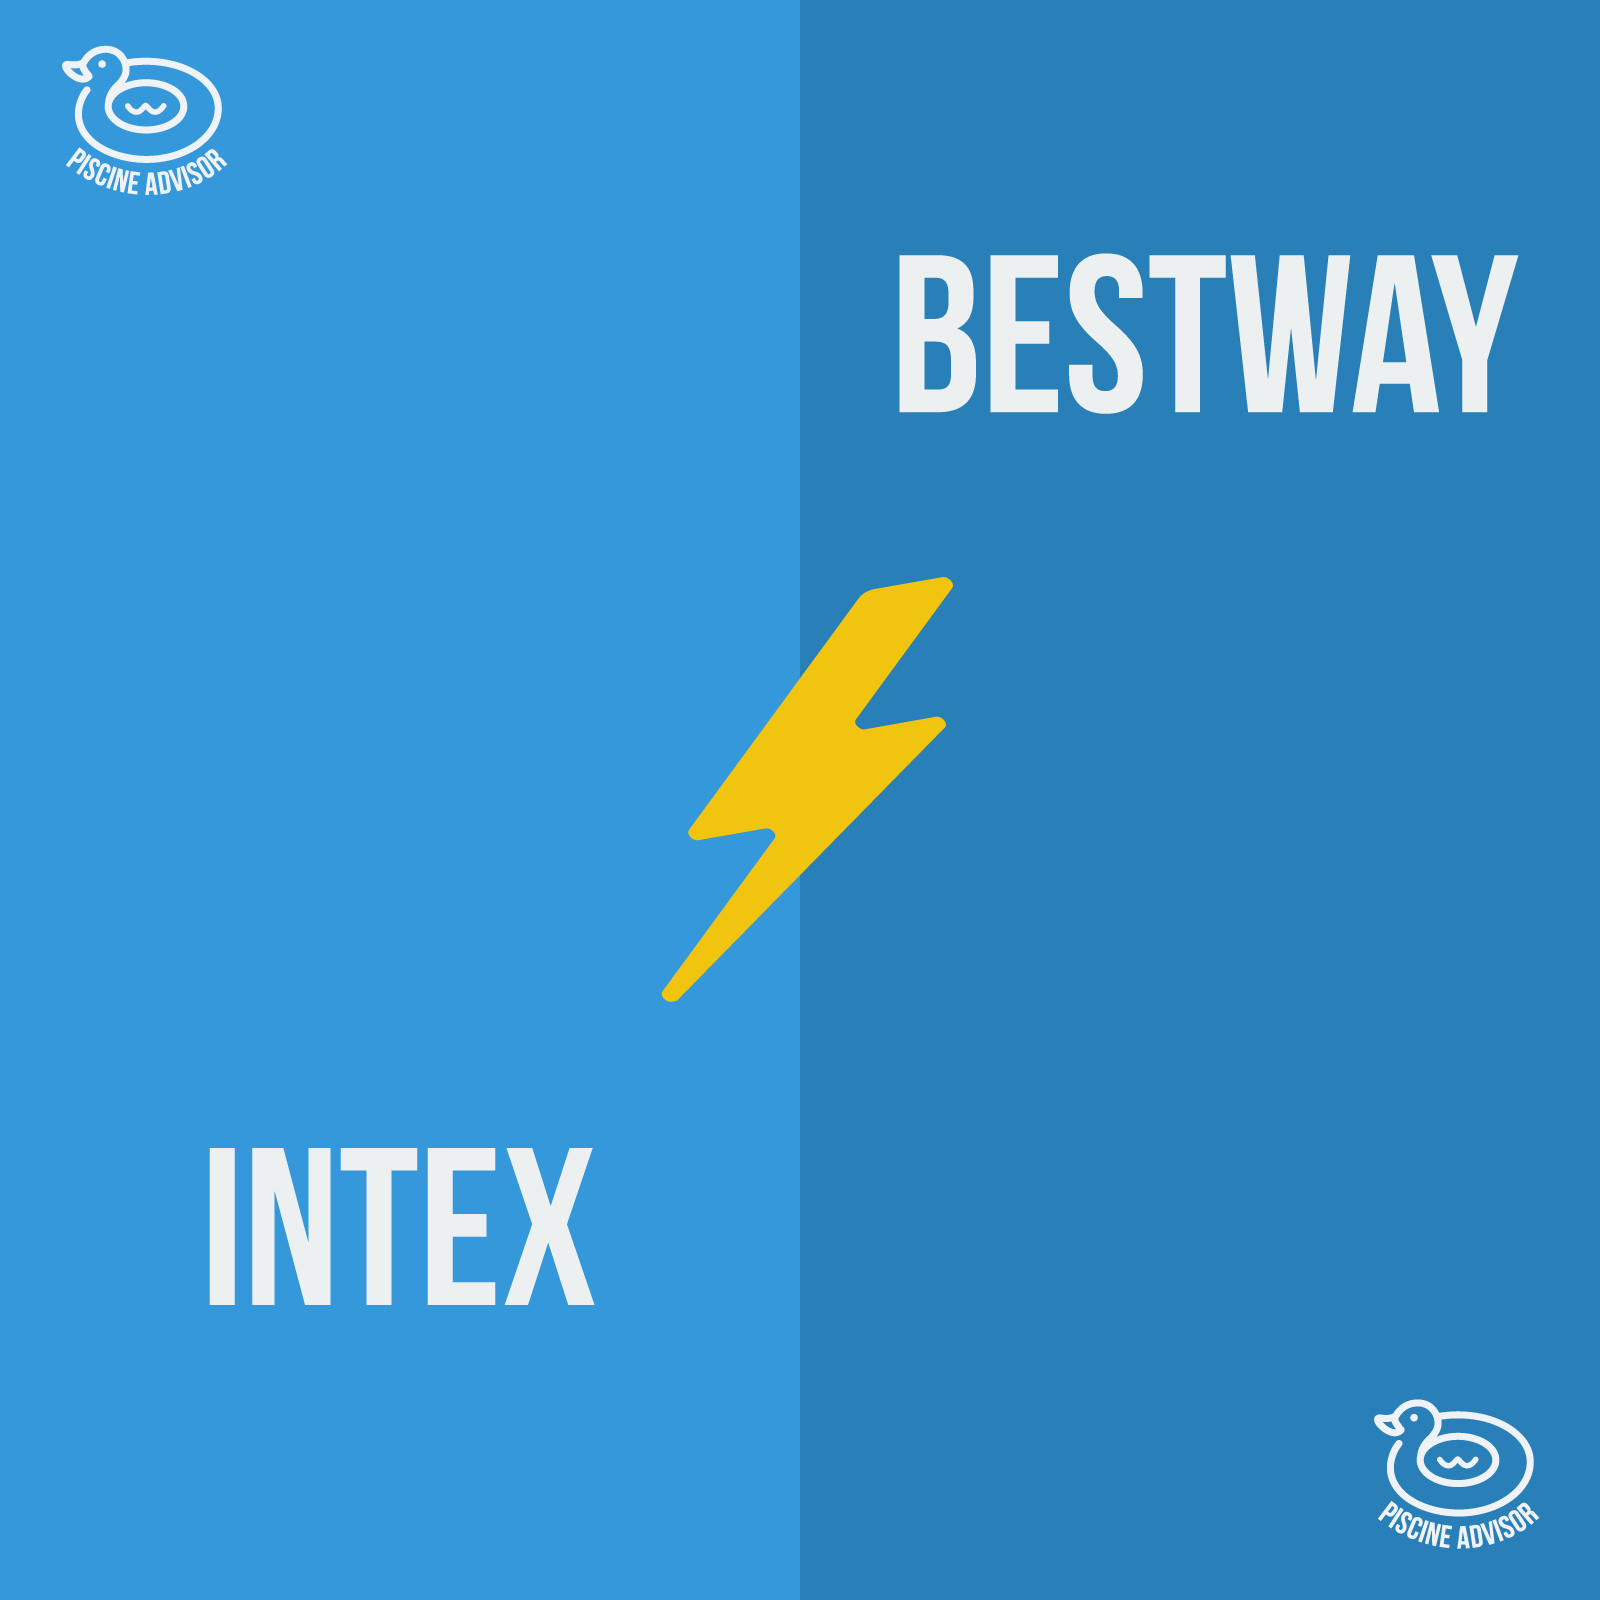 intex ou bestway quelle difference